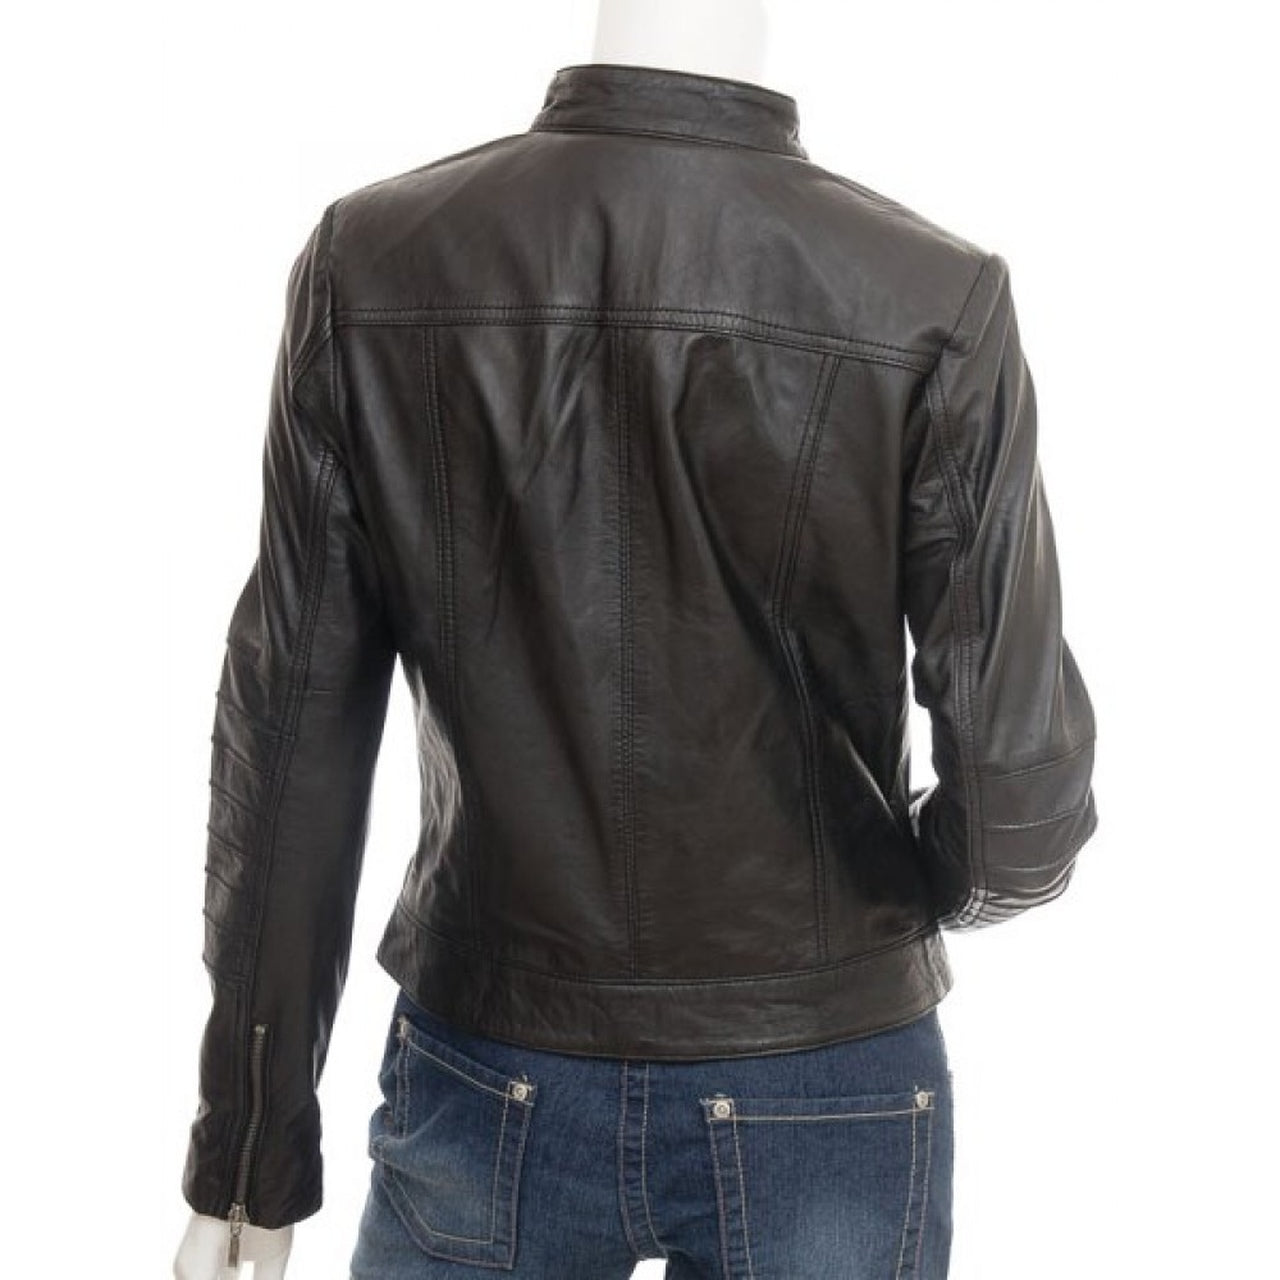 Dark Brown Stylish Leather Jacket for Women - Leather Jacket